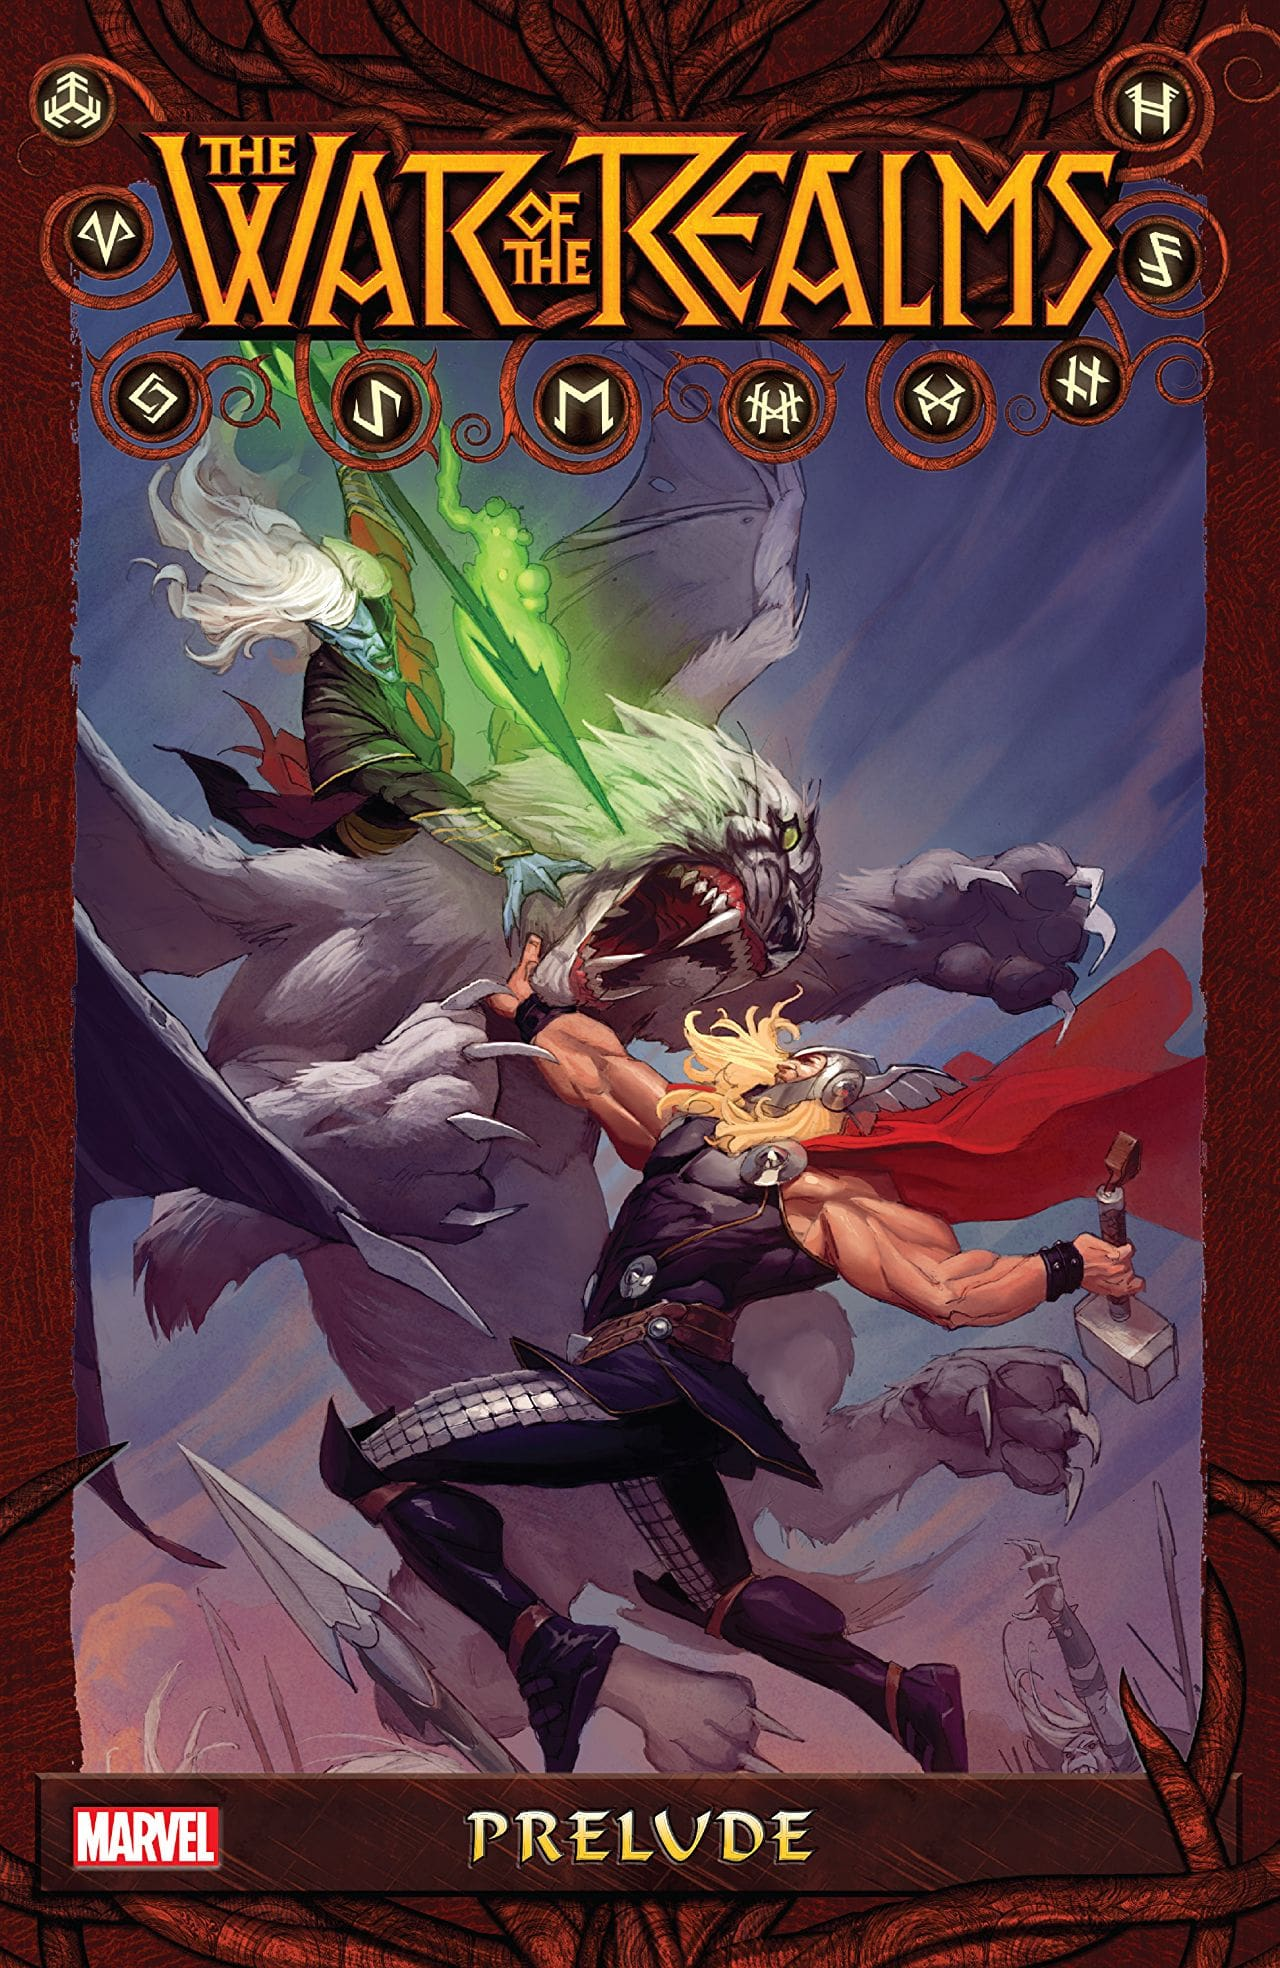 The War of the Realms Prelude review: A collection bringing the 9 (10) realms closer to their doom